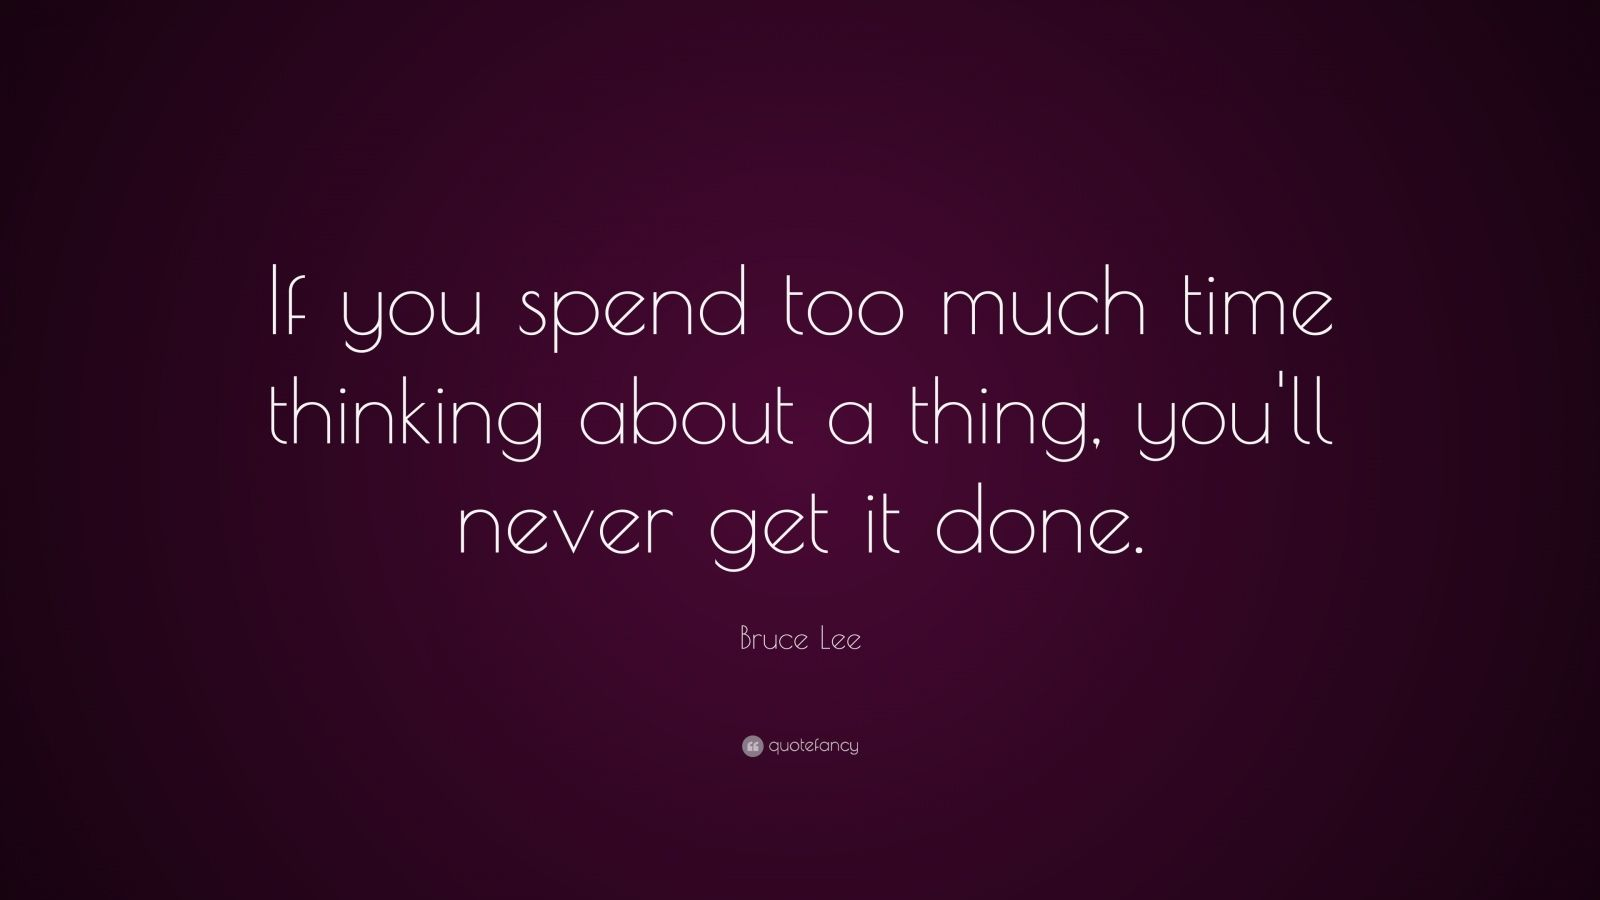 """Bruce Lee Quote: """"If you spend too much time thinking about a thing, you'll never get it done."""""""